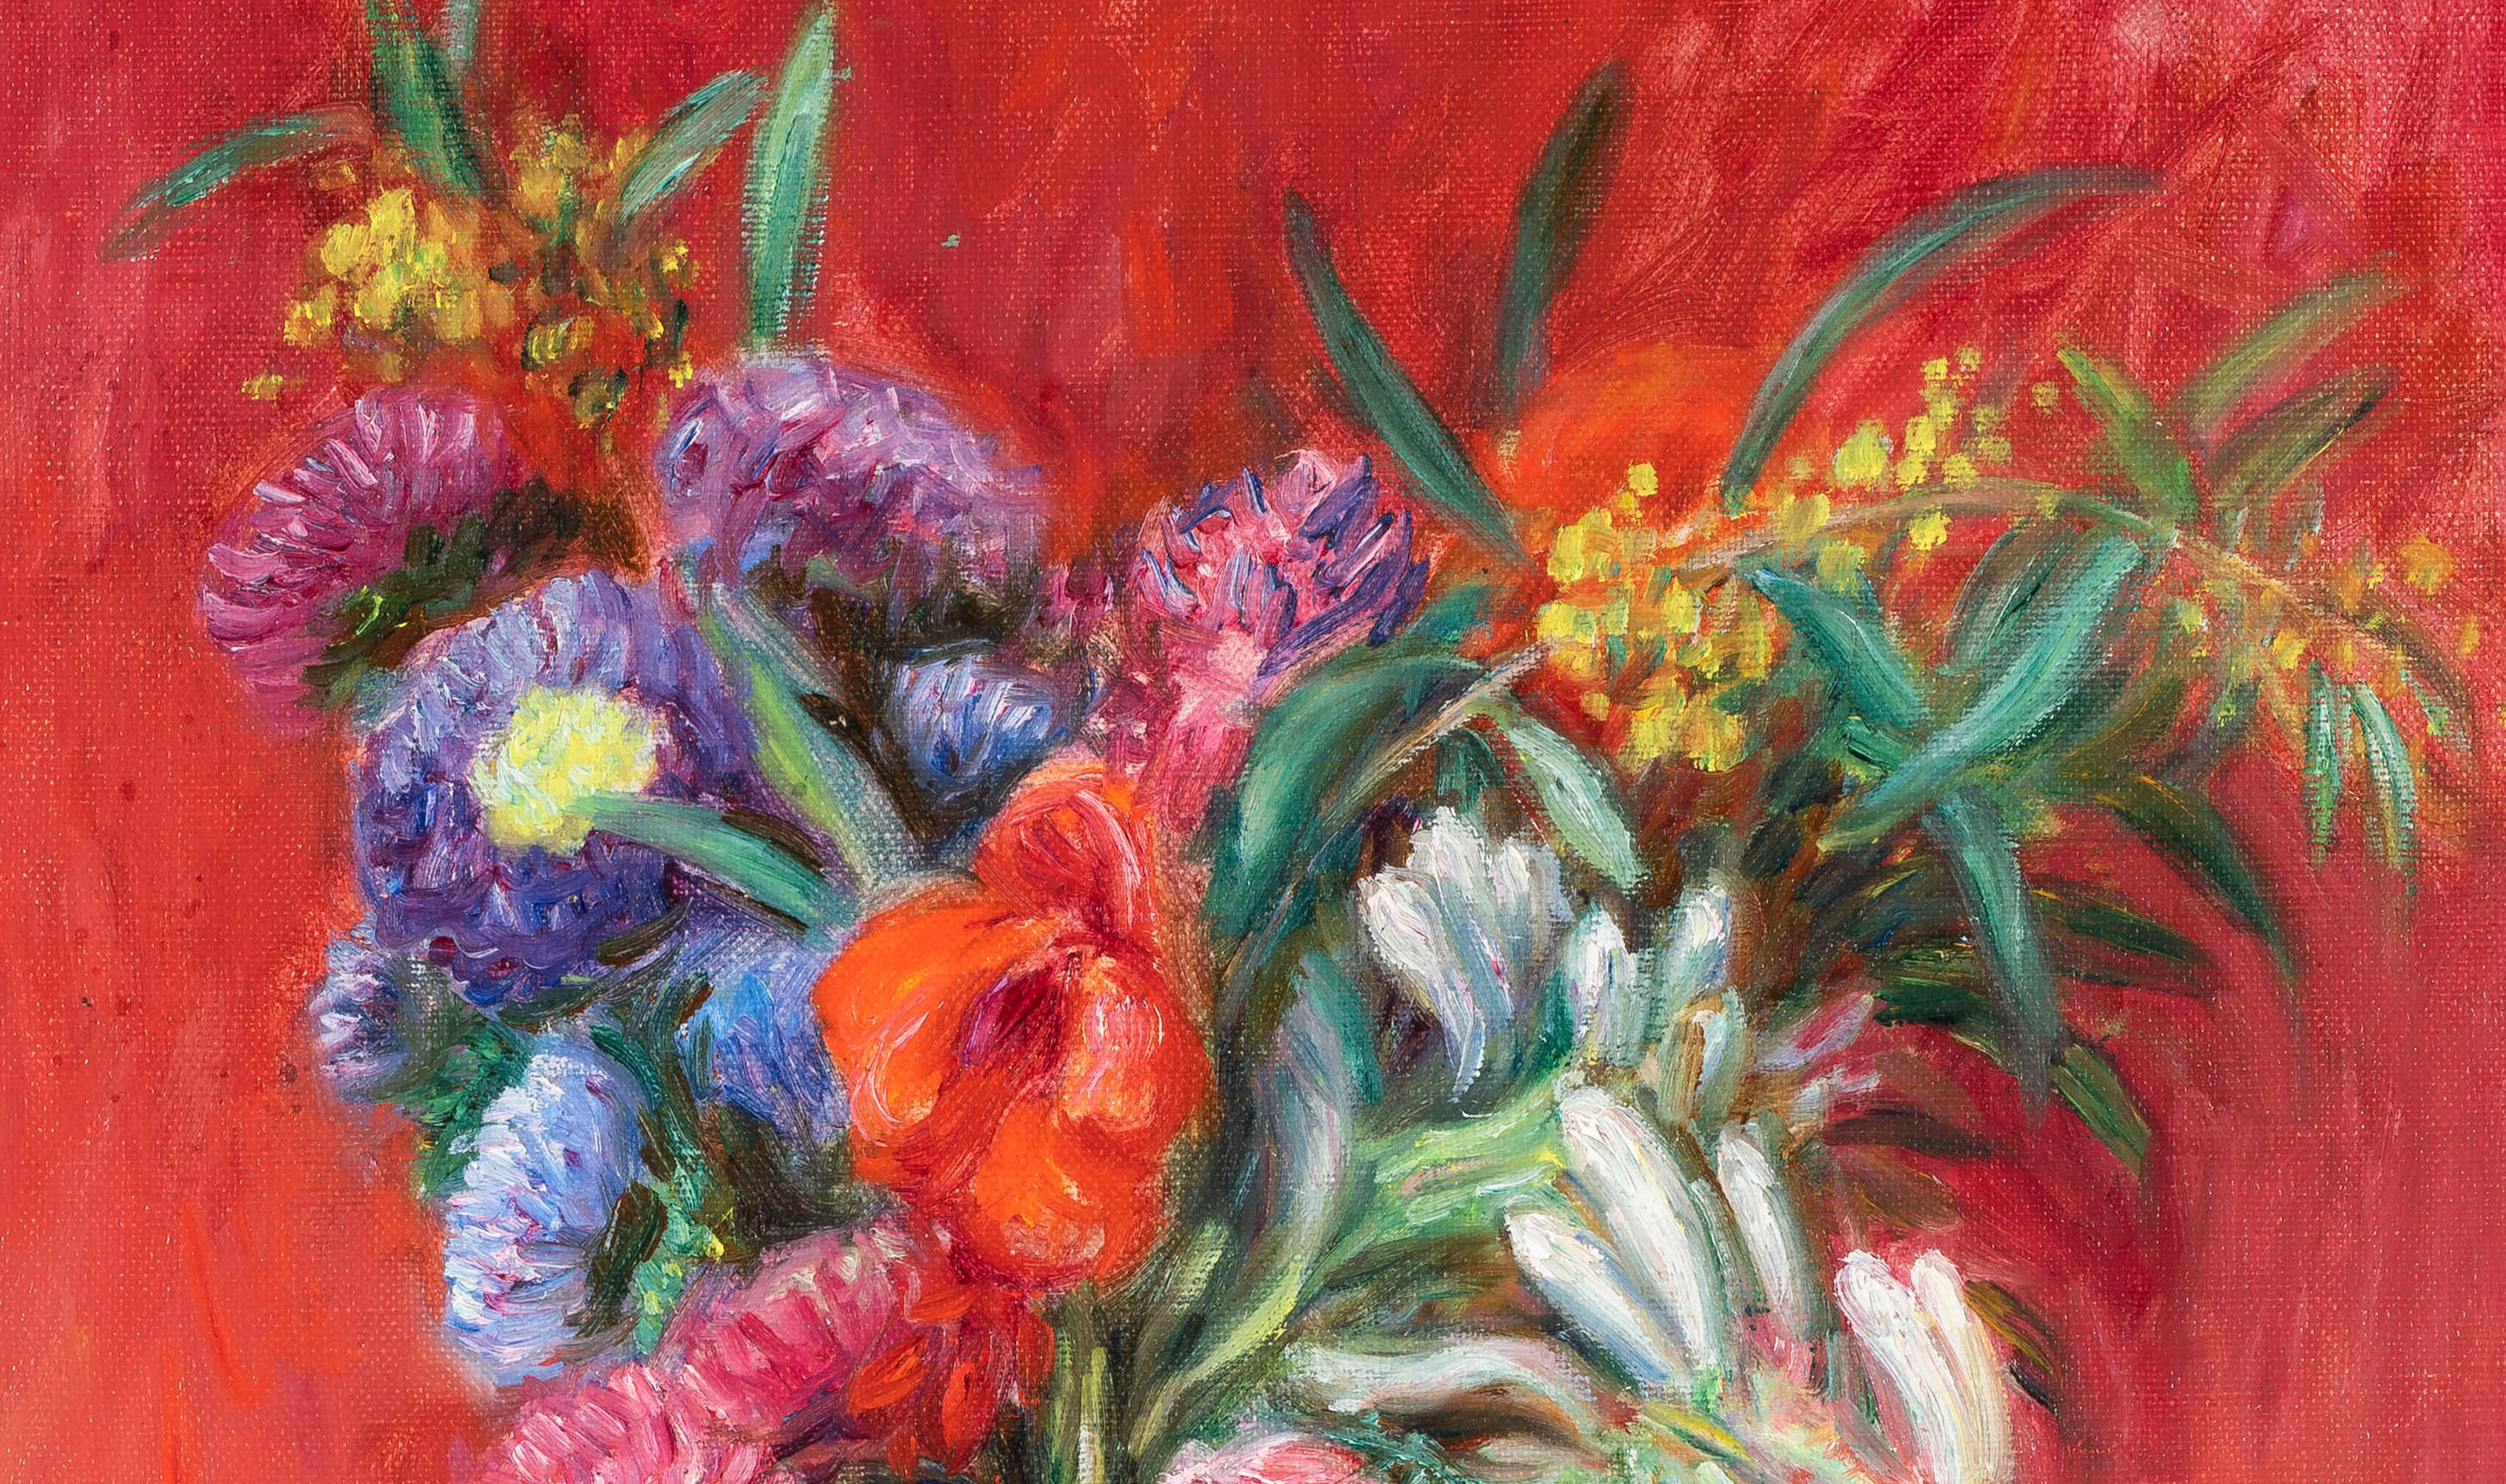 Painting of flowers in a vase that captures light and color.